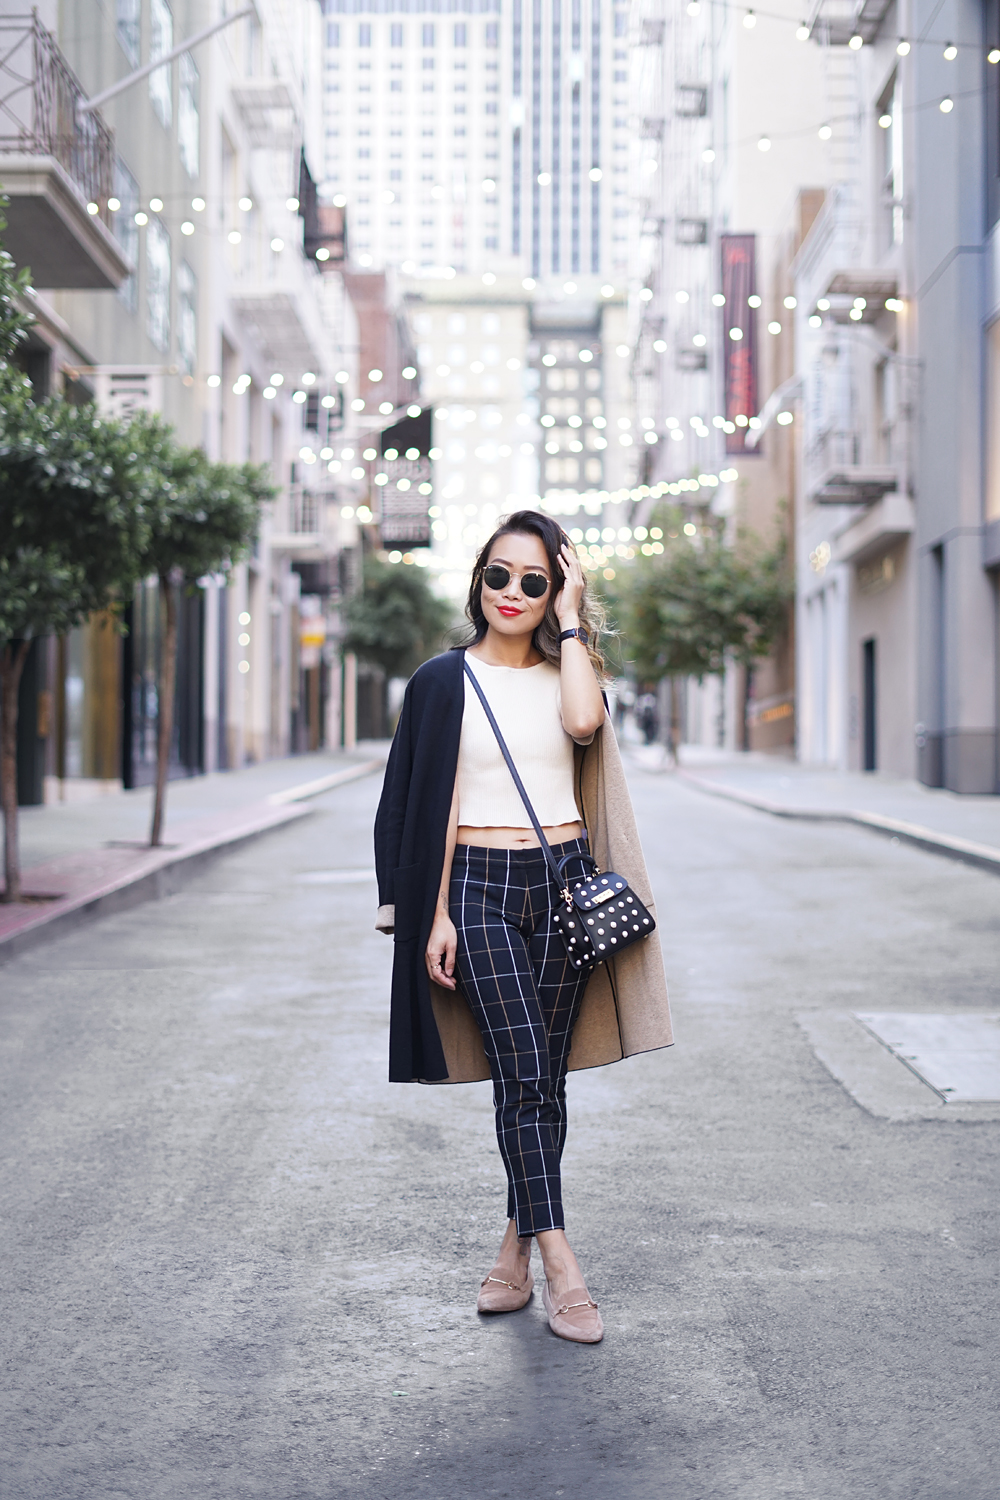 05maidenlane-sf-fashion-style-ootd